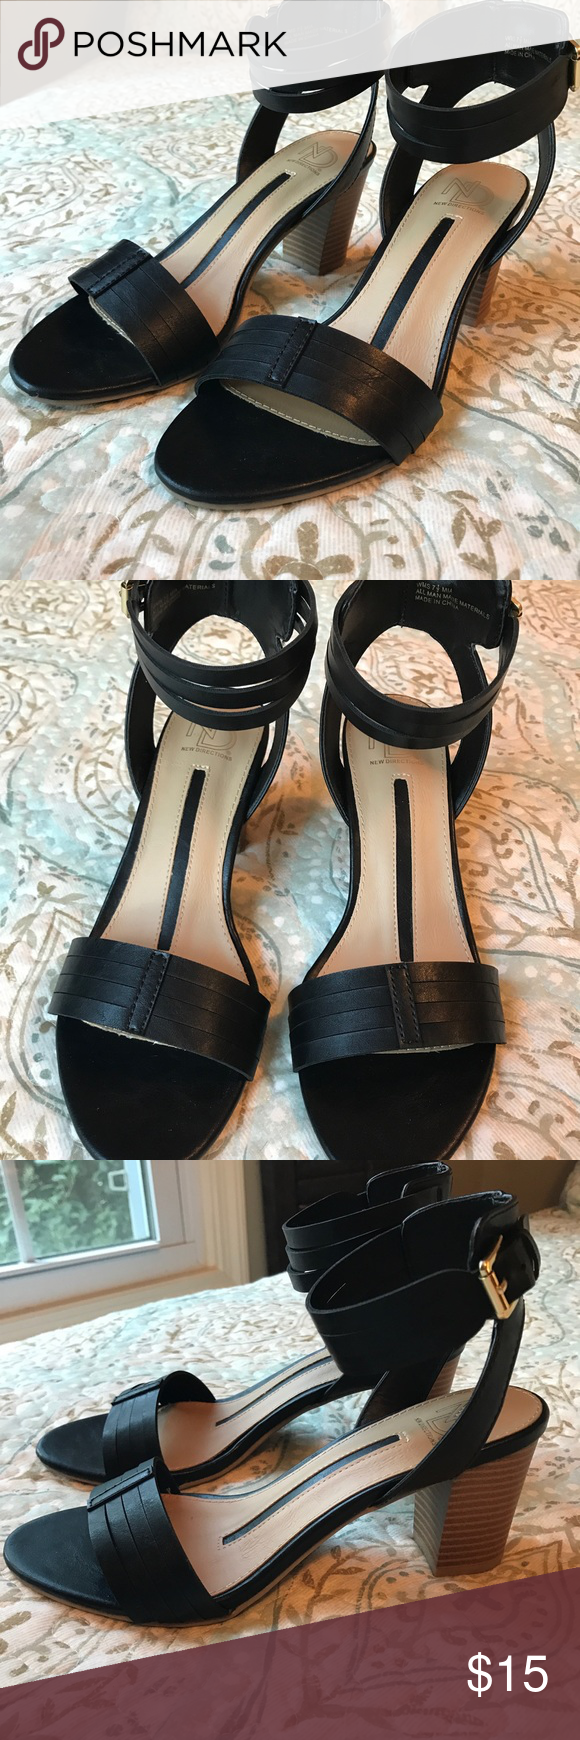 f1c4db049f7 New Directions 7.5 Block Wooden Heel Black Sandals New Without Tags Box!  This style is all in right now. new directions Shoes Sandals